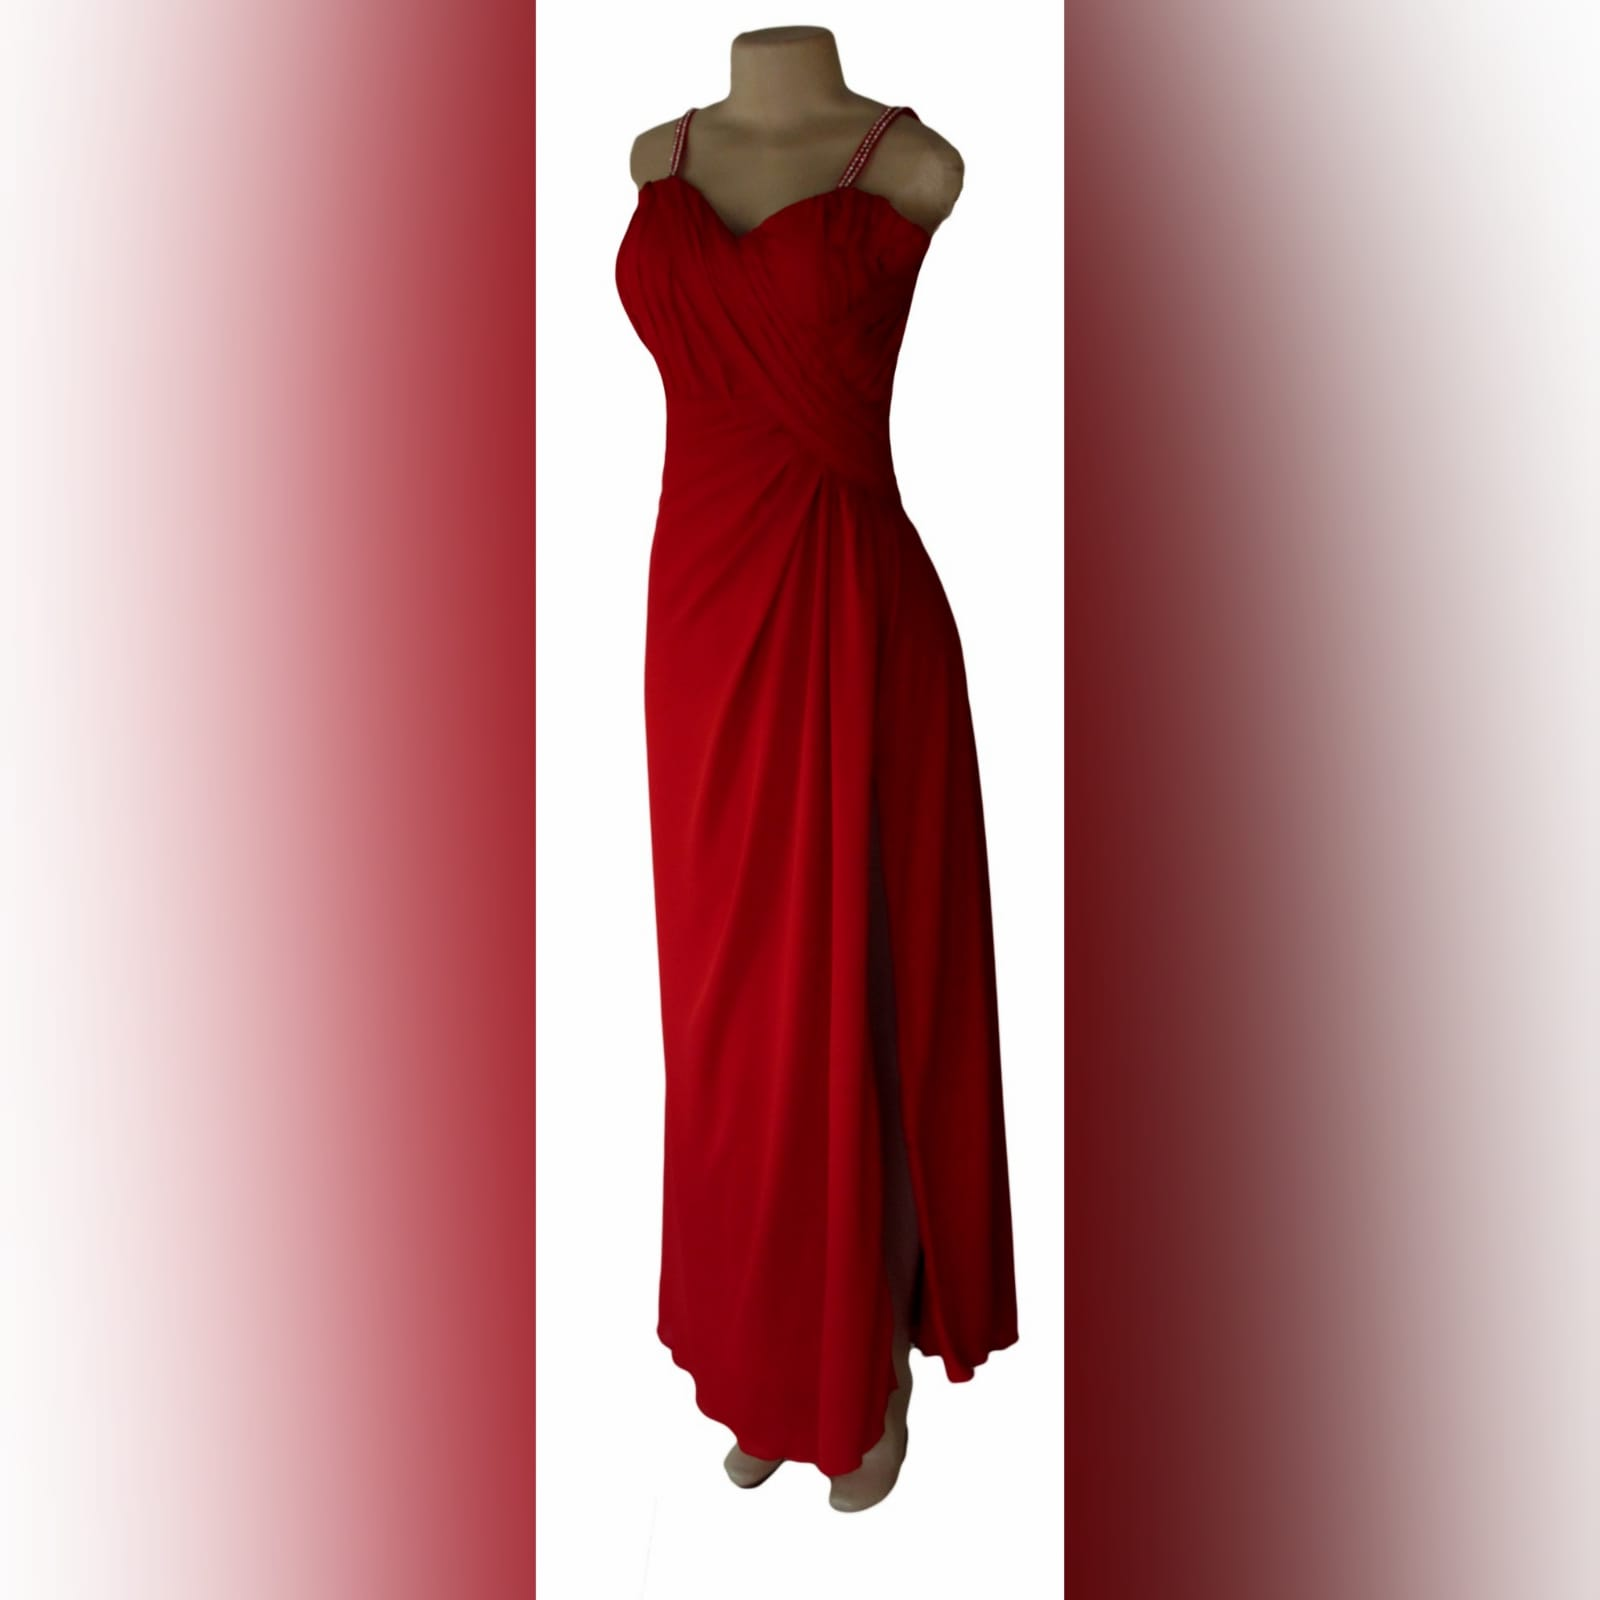 Bright red long crossed slit evening dress 3 bright red long crossed slit evening dress with a ruched bodice and hip. Shoulder straps detailed with diamante.